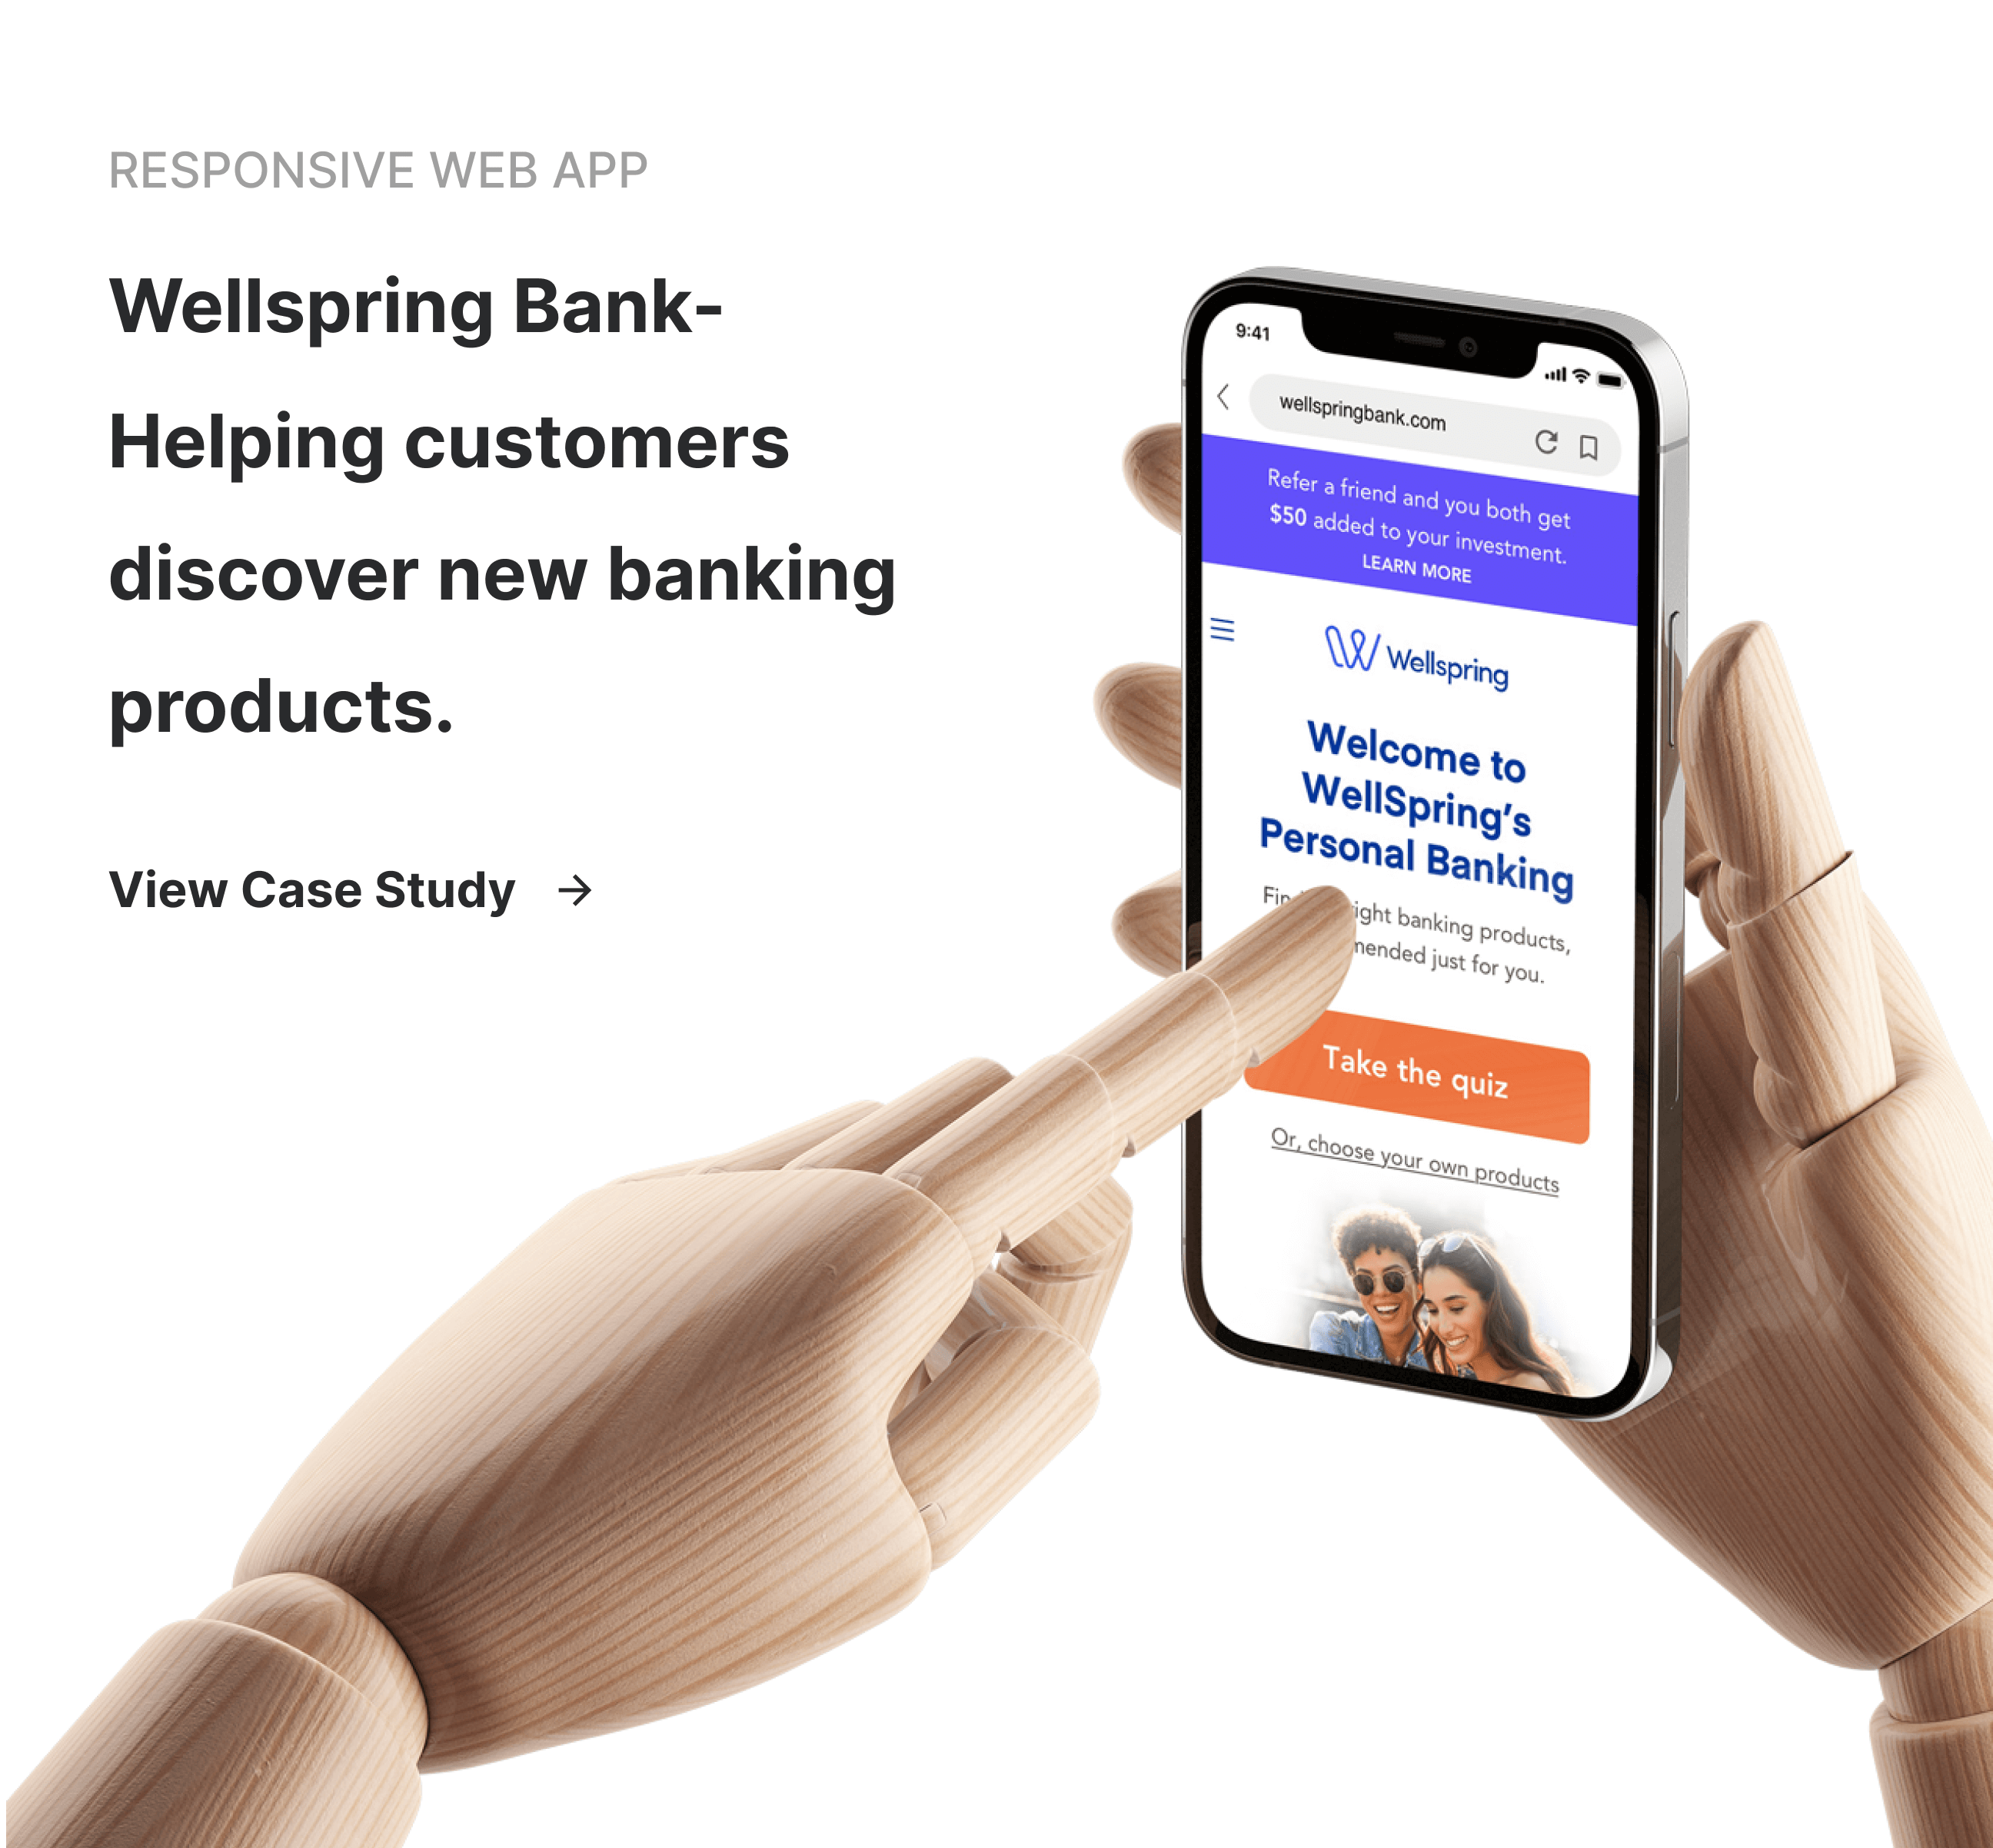 Wellspring Bank - Helping customers discover new banking products.